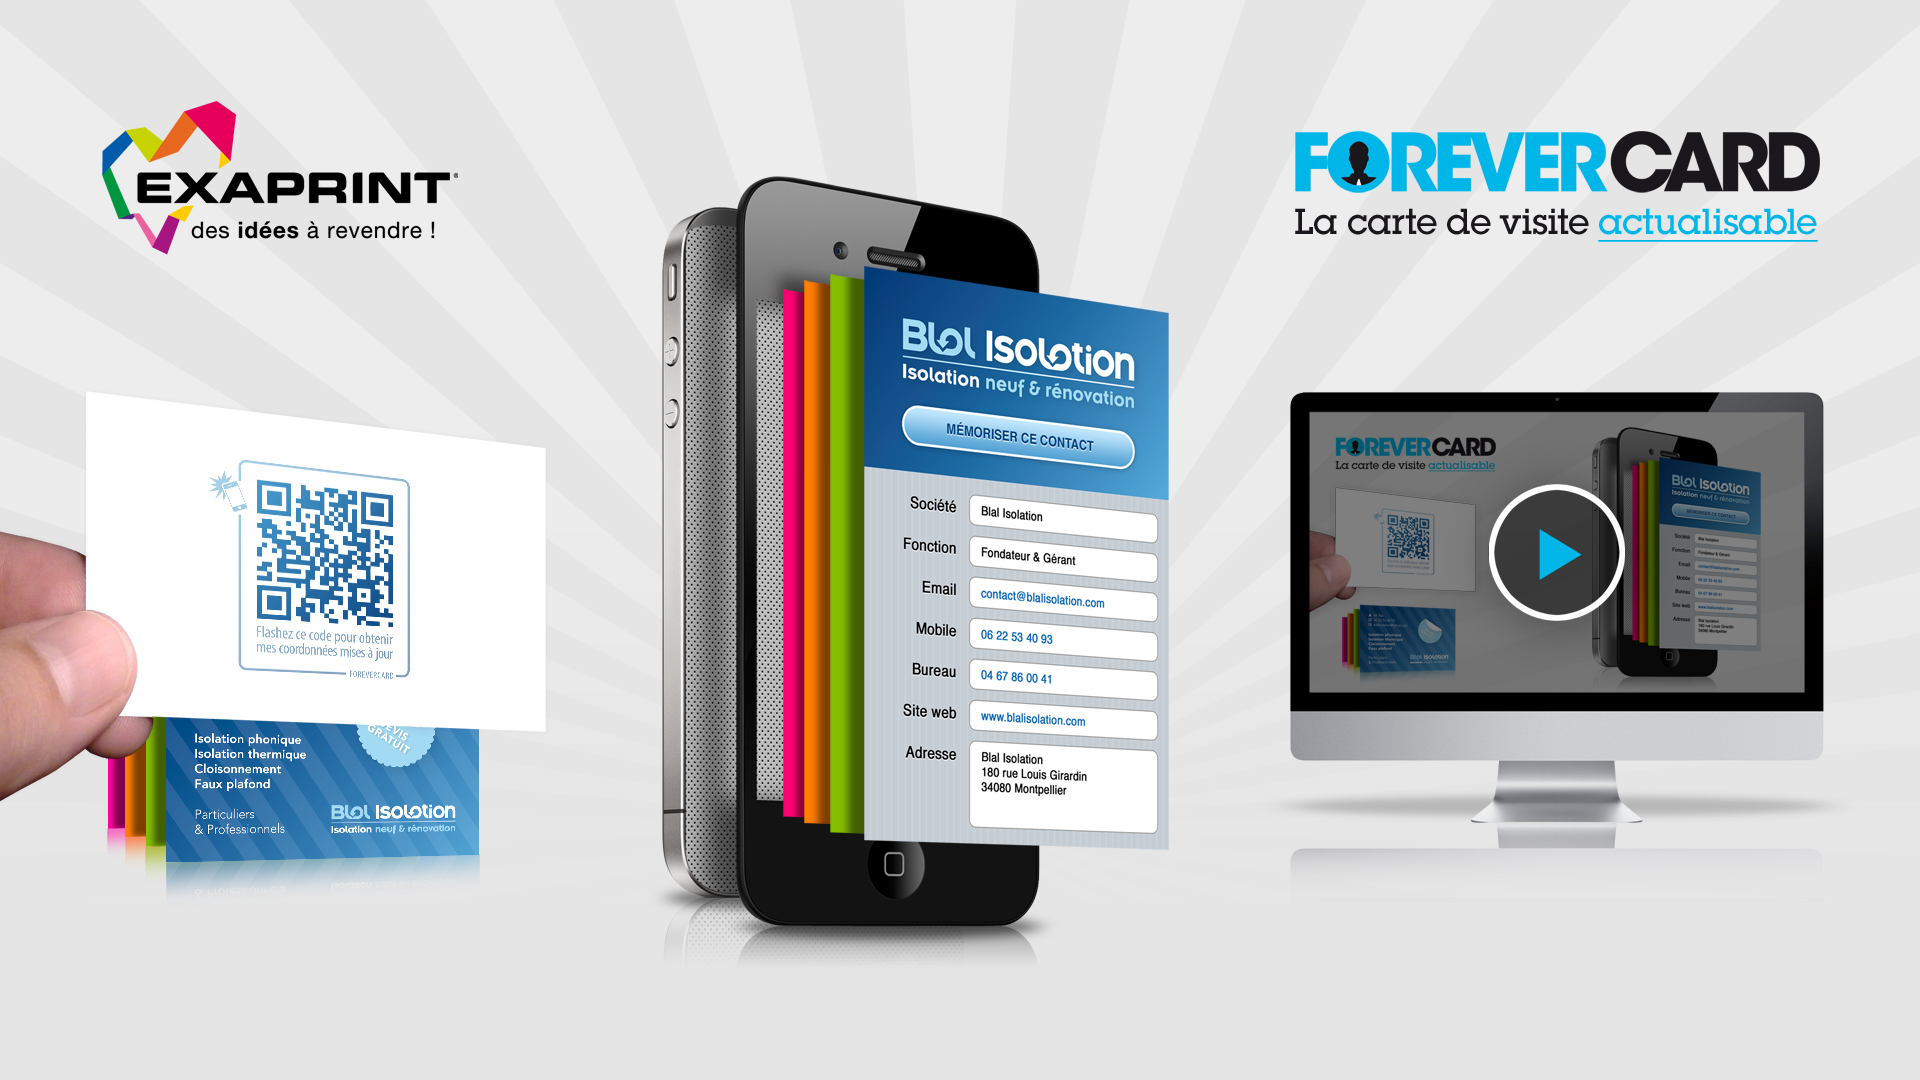 exaprint-forevercard-creation-concept-visuel-mailing-site-communication-caconcept-alexis-cretin-graphiste-bis